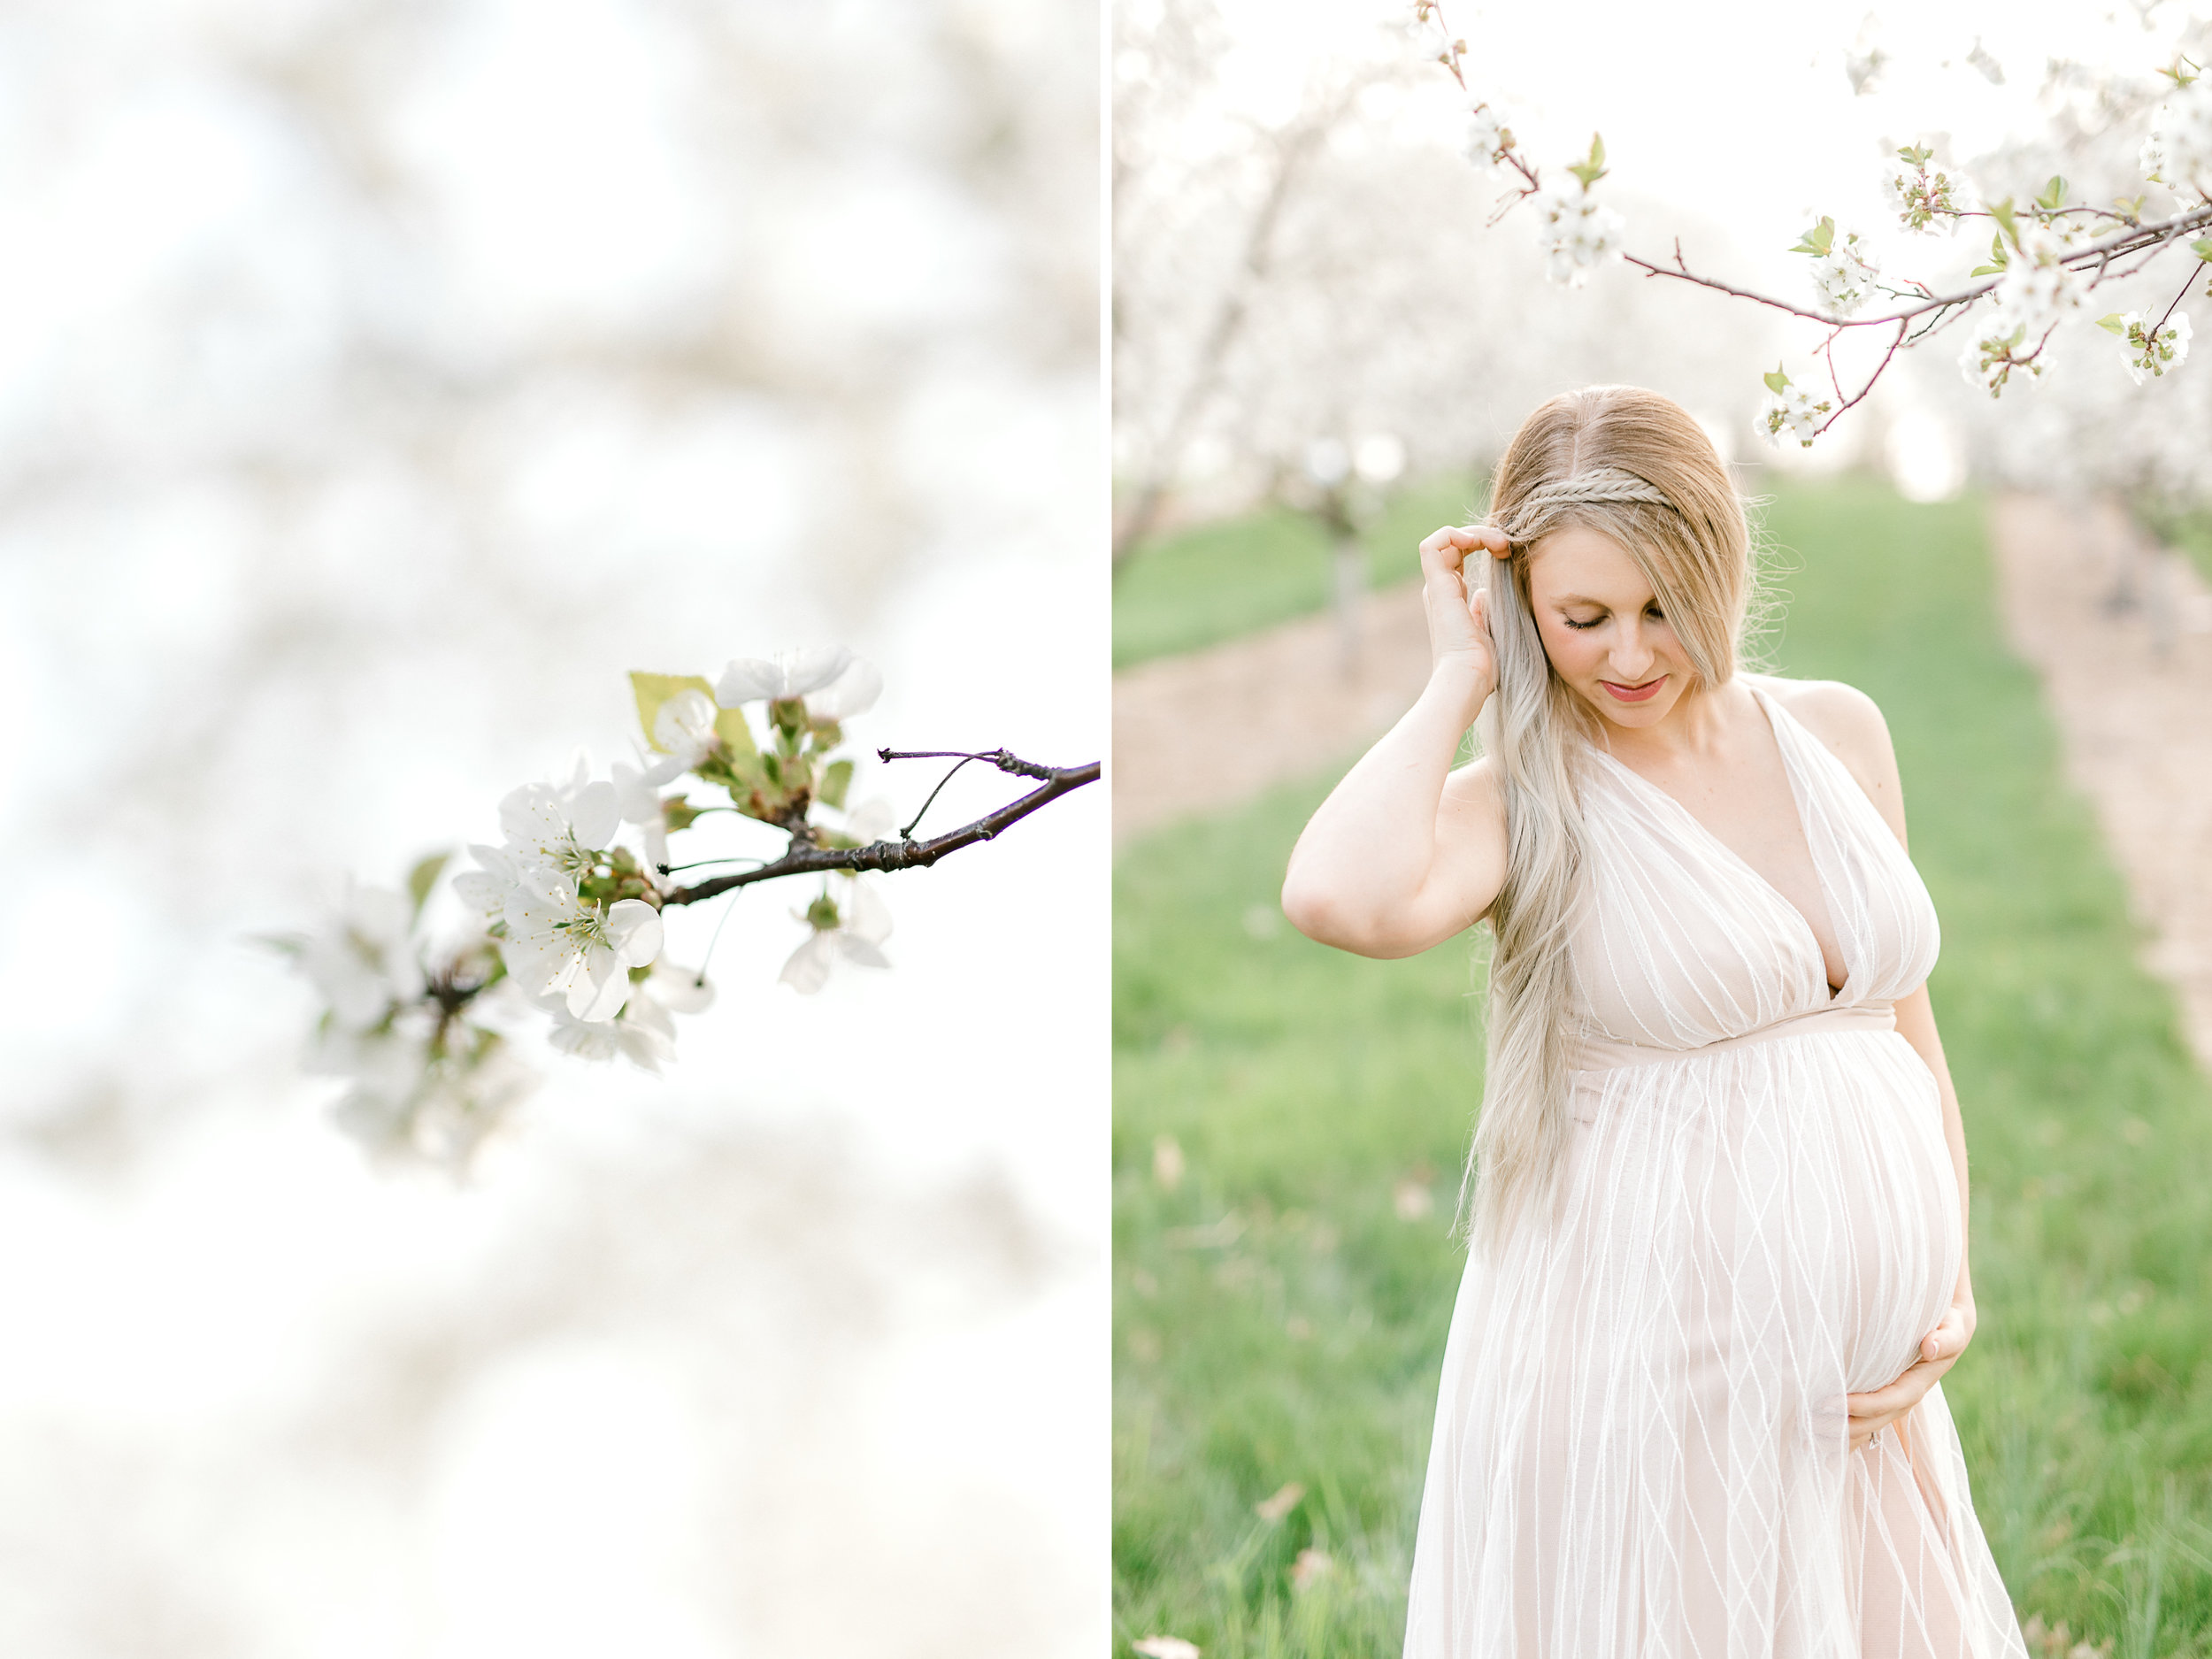 Spring Cherry Blossom Maternity Session in Mattawan Michigan | Light and Airy Maternity Photos | Couples Maternity | Laurenda Marie Photography